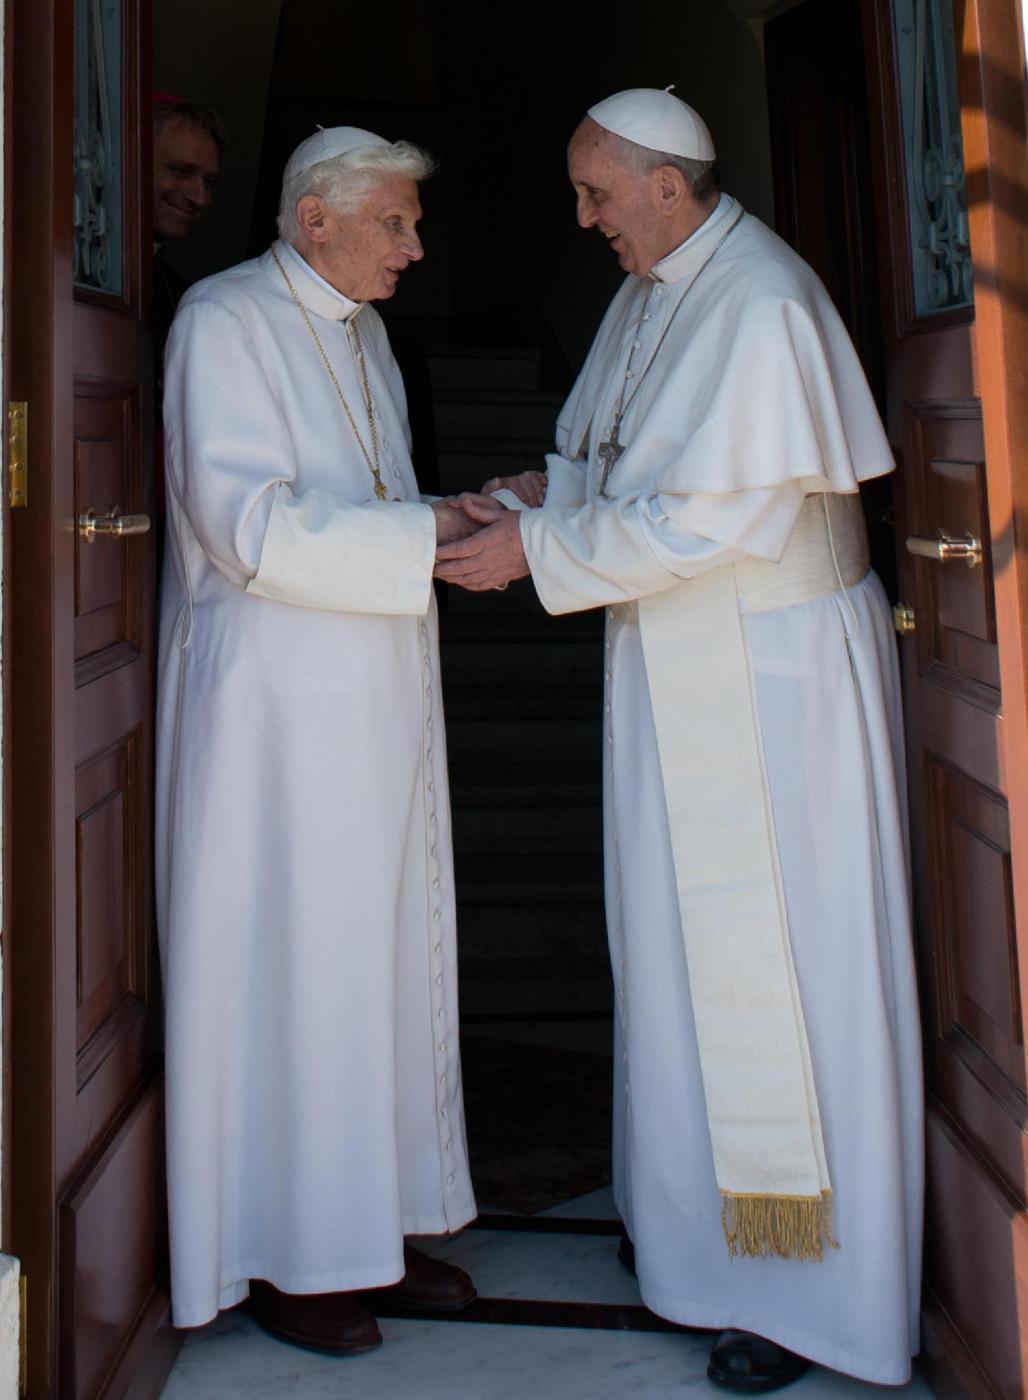 http://www.giornalettismo.com/wp-content/uploads/2013/05/DUE-PAPI-IN-VATICANO-7.jpg